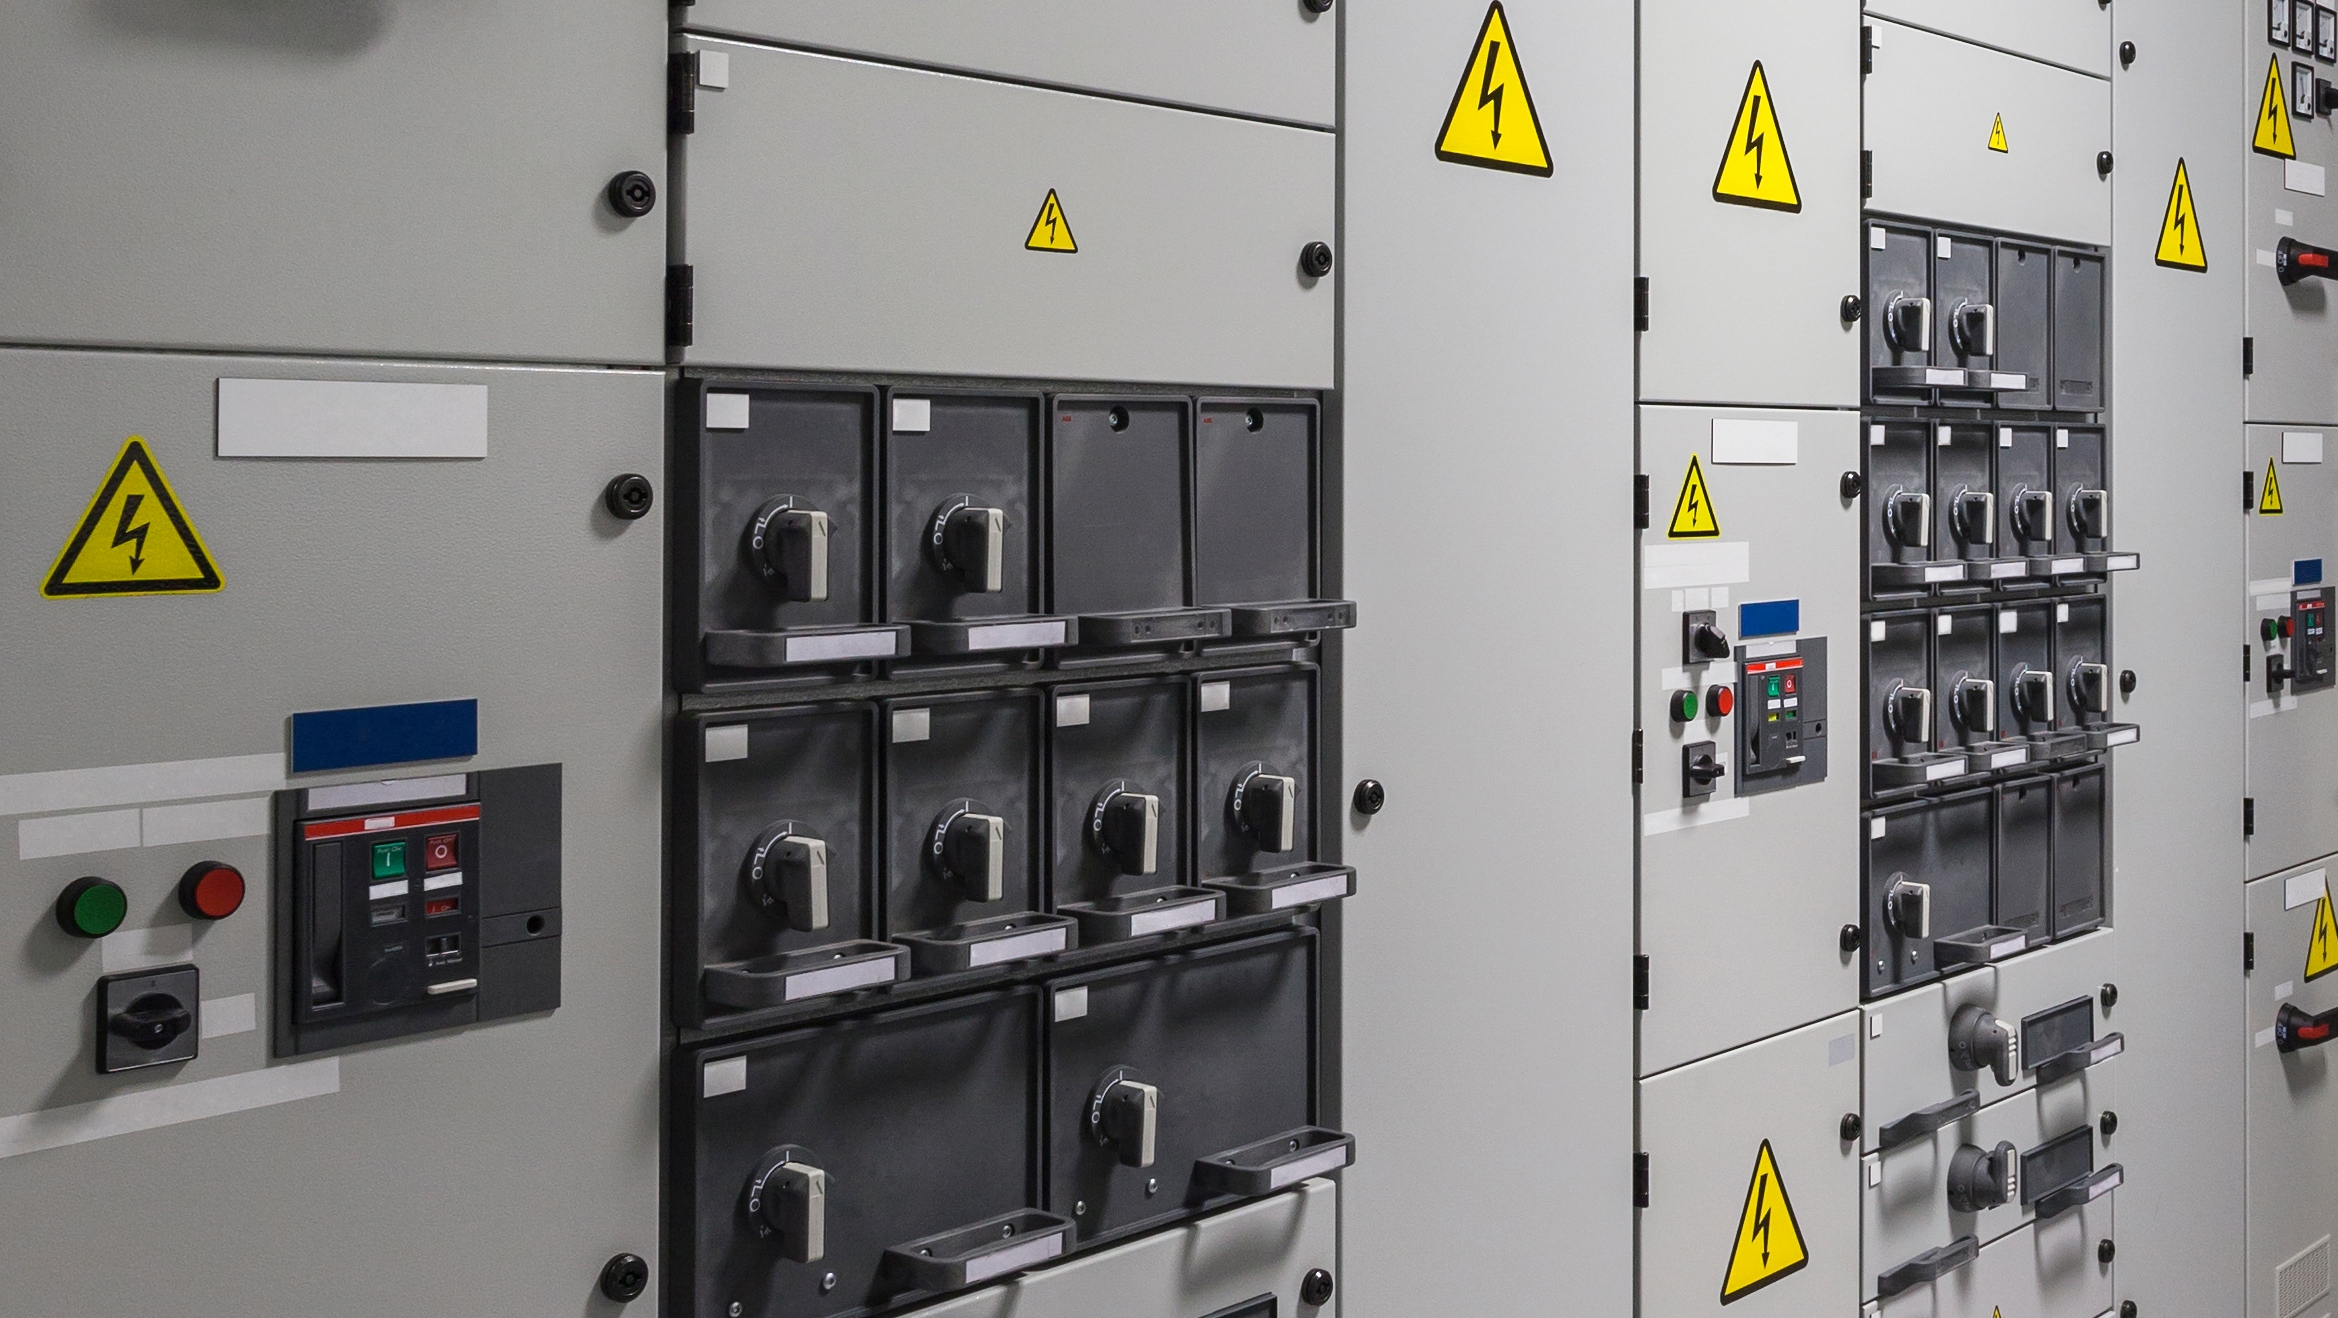 Industrial electrical switch panel in power station